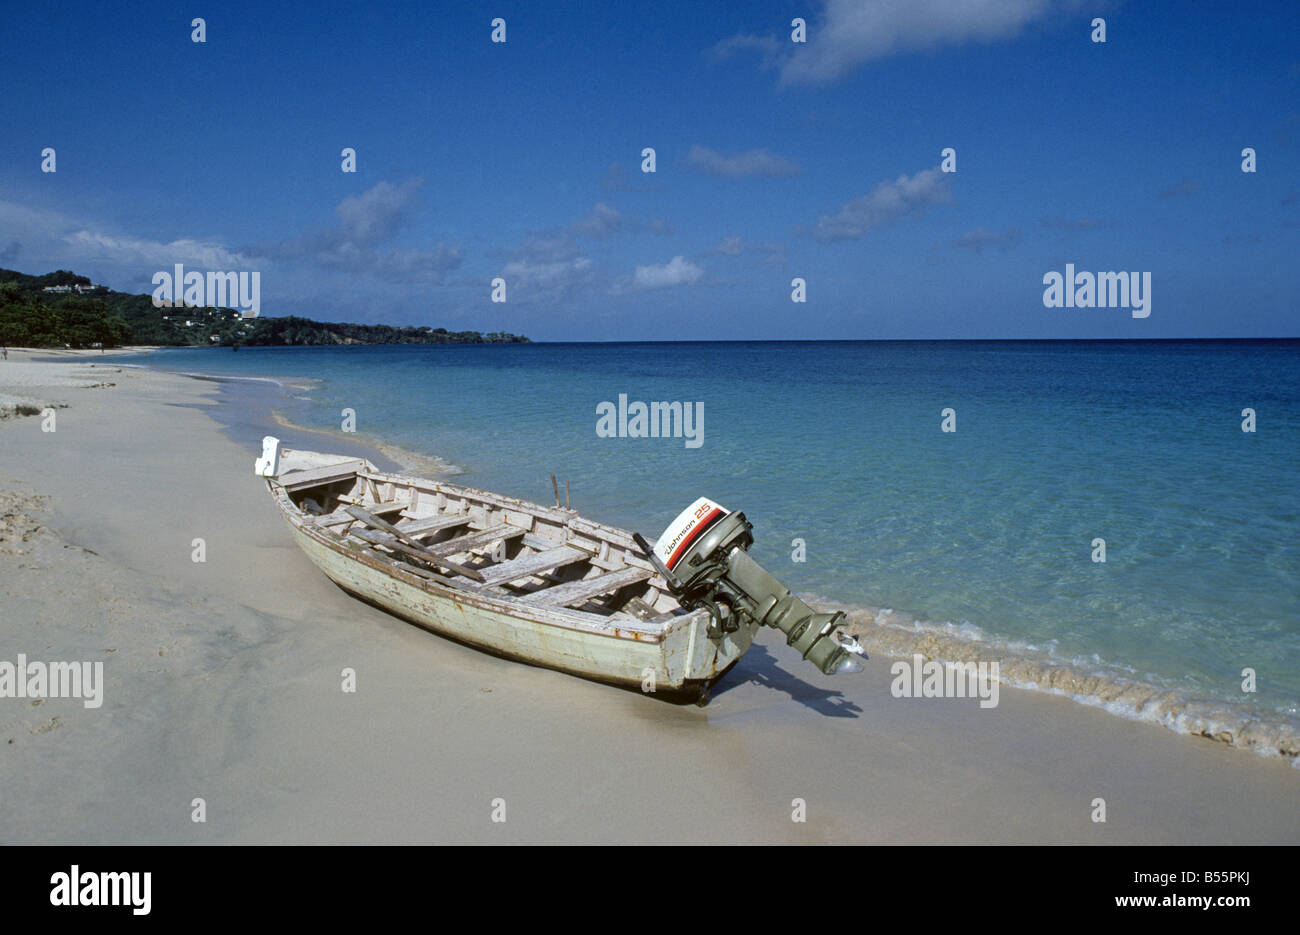 A fishing boat on a beautiful white sand beach on the island of St Thomas Stock Photo